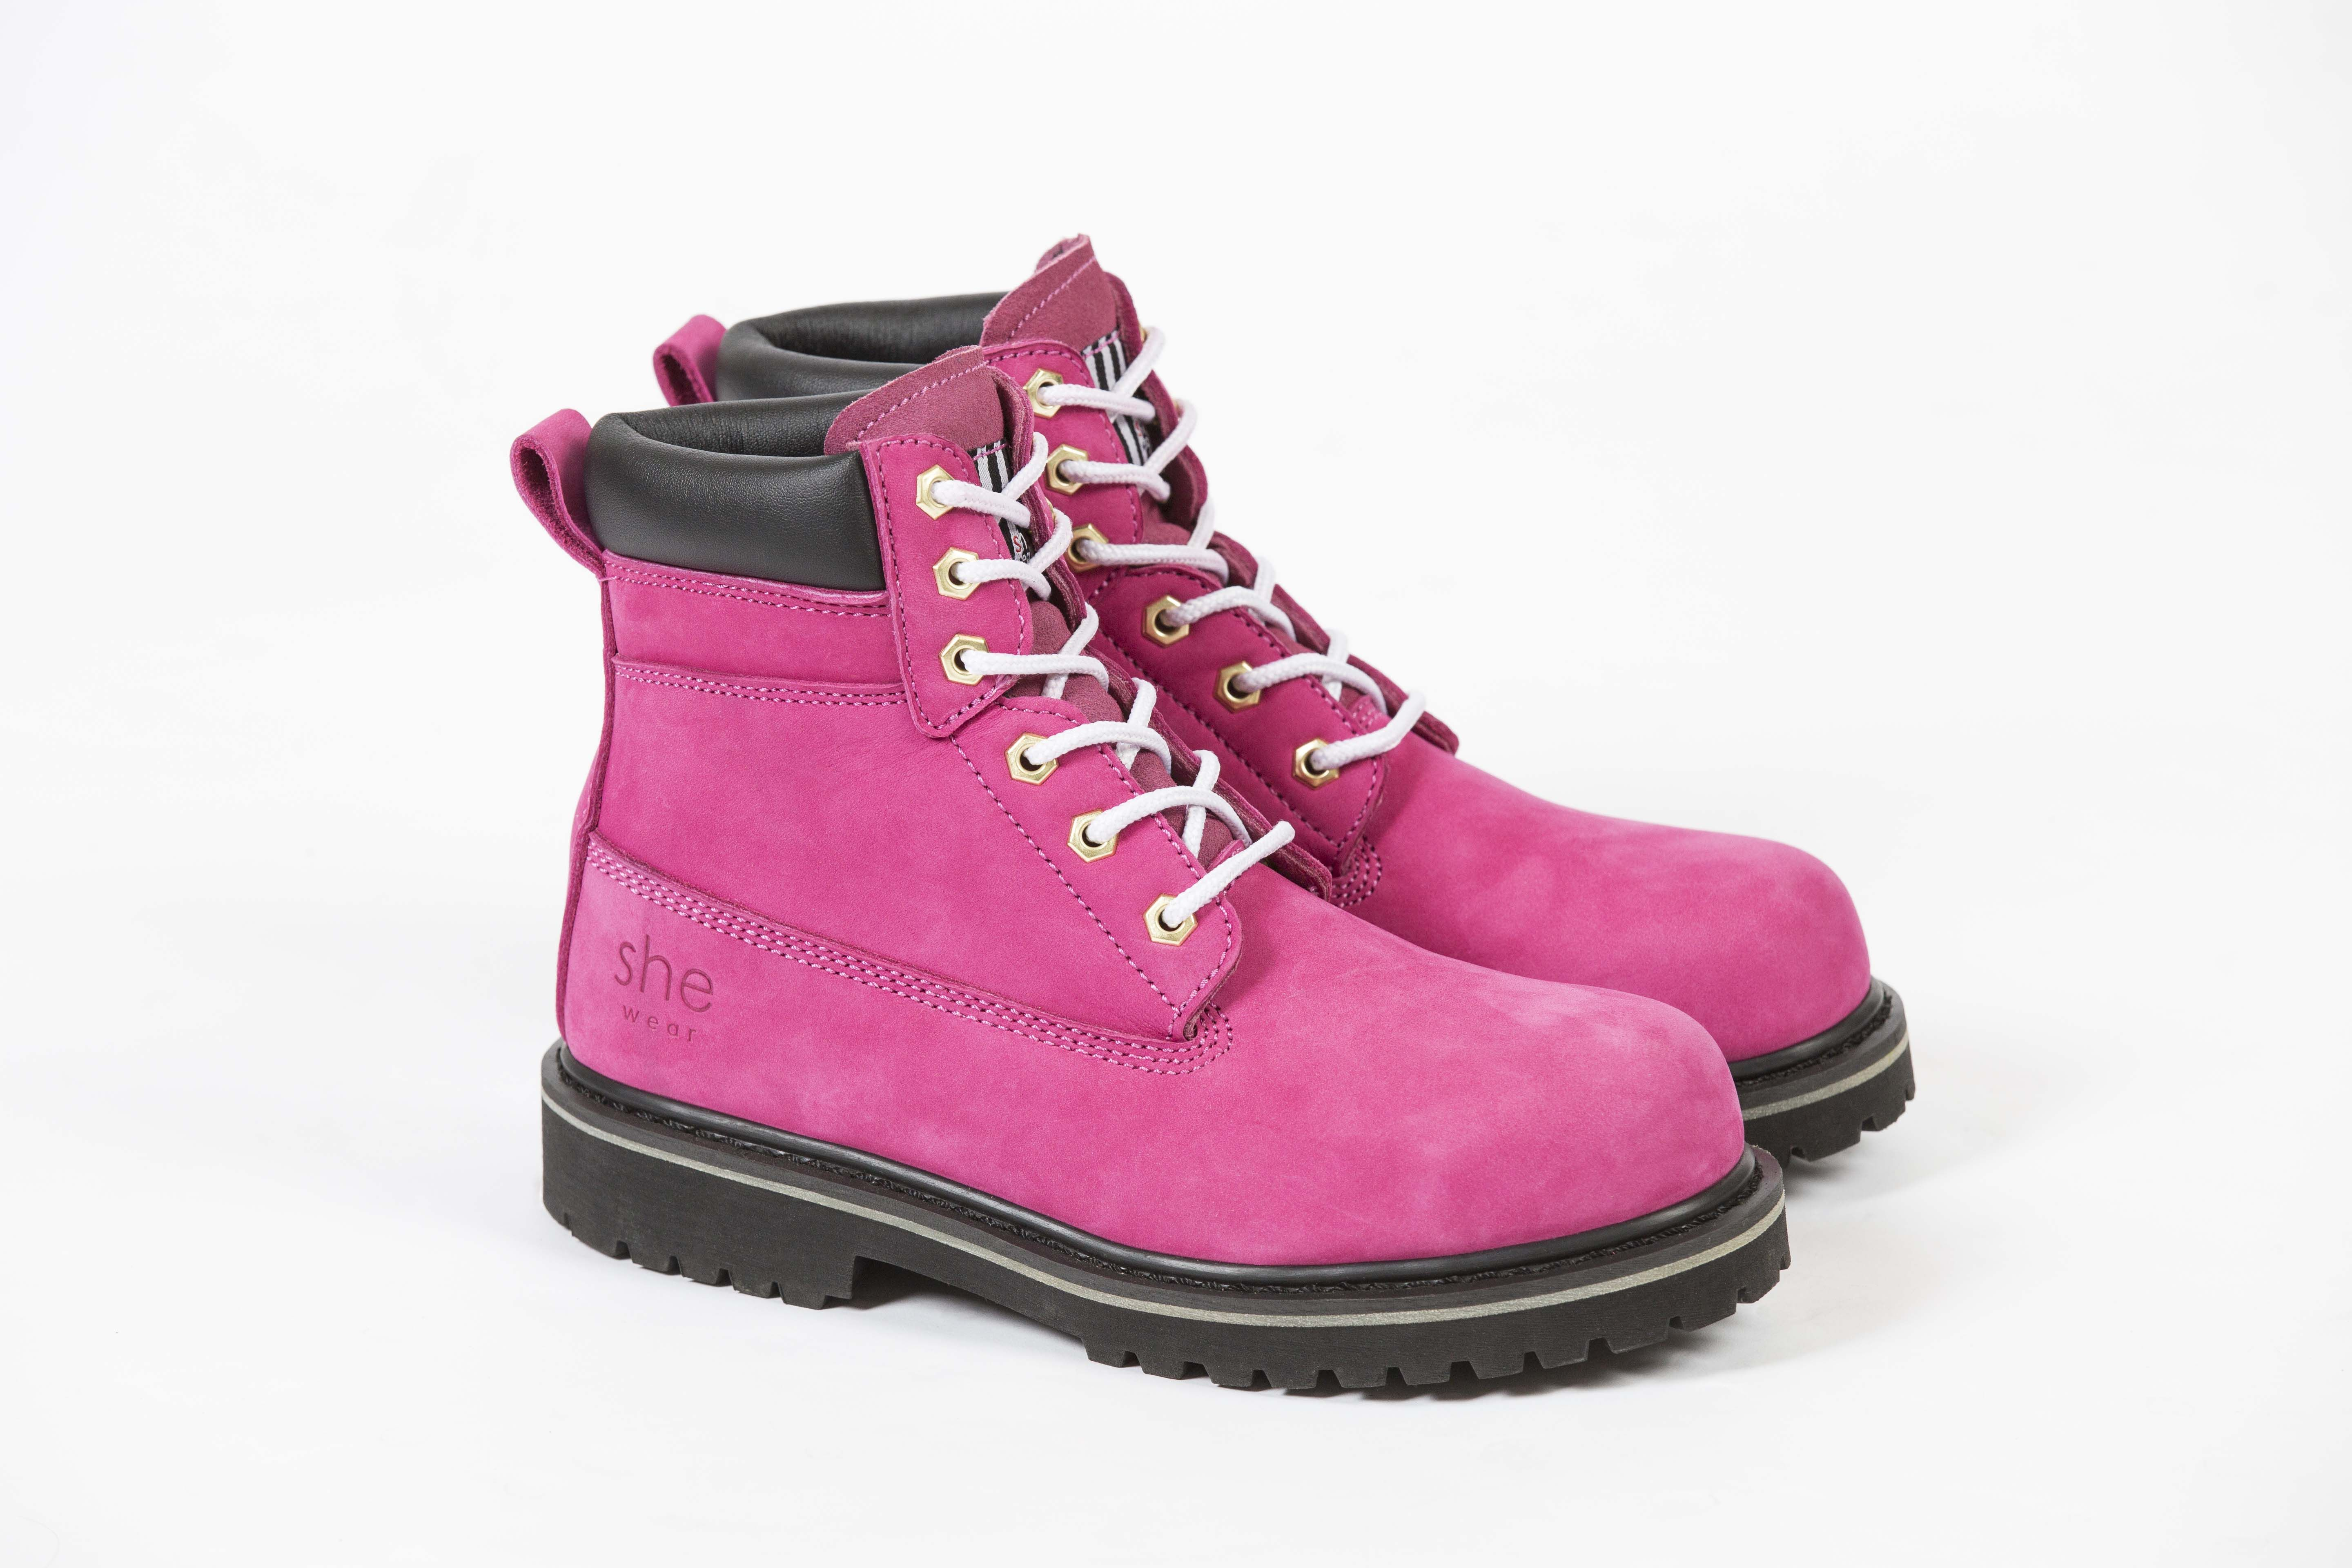 c90e5427bbf our very bright hot pink she wear she can safety work boot ...